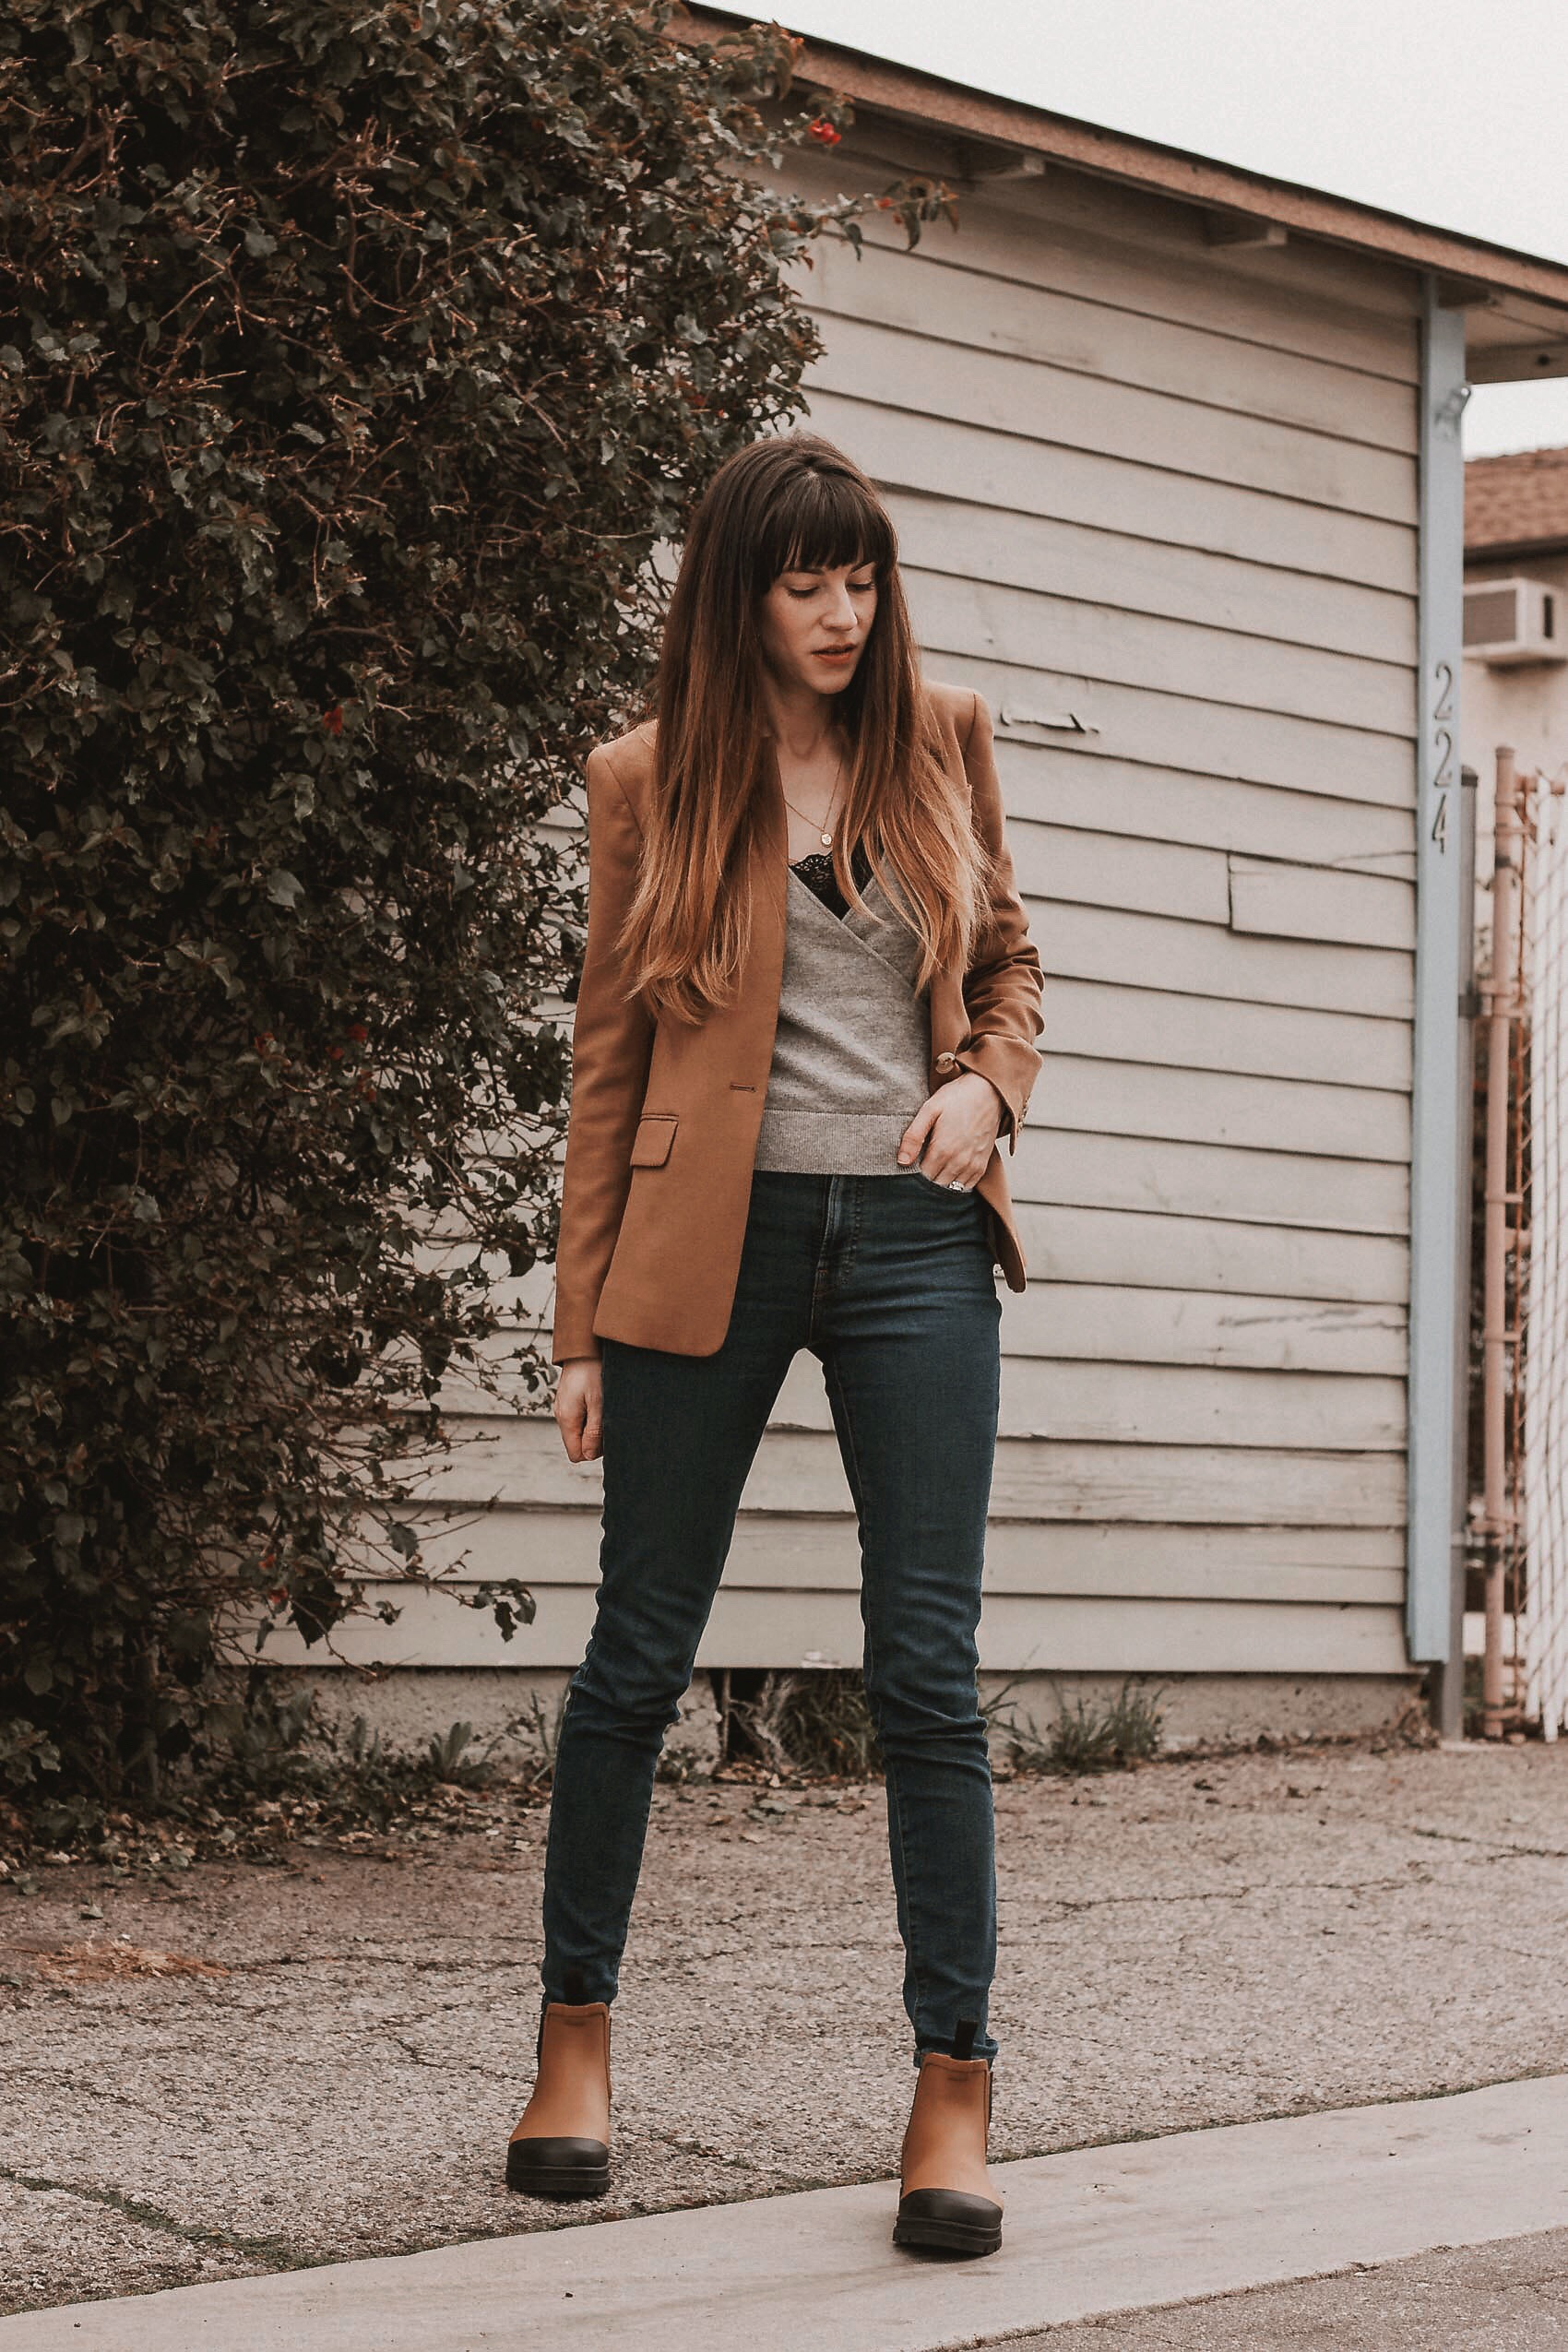 Los Angeles blogger wearing J.Crew Blazer, Everlane Cashmere Wrap Sweater, and Everlane Rain Boots